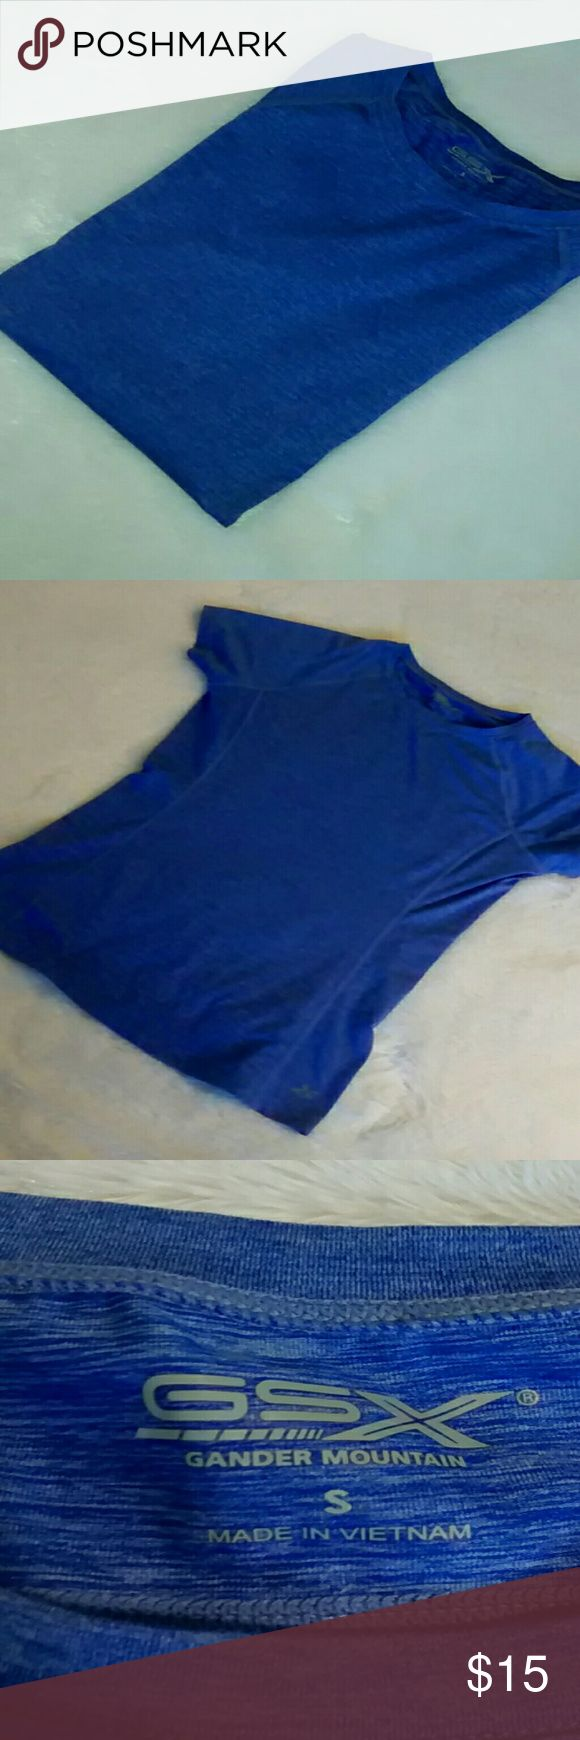 GSX Gander Mountain Workout Top Beautiful blue GSX Gander Mountain.  Brand New with no tags.  Excellent condition.  Plenty of stretch.  Size Small.  88% Polyester.  12% Spandex.  No stains, no holes and no pulls. Love offers! Bundle 2 or more items and save 15% All items come from a smoke/pet free home Fast Shipping! No trades Gander Mountain Tops Tees - Short Sleeve